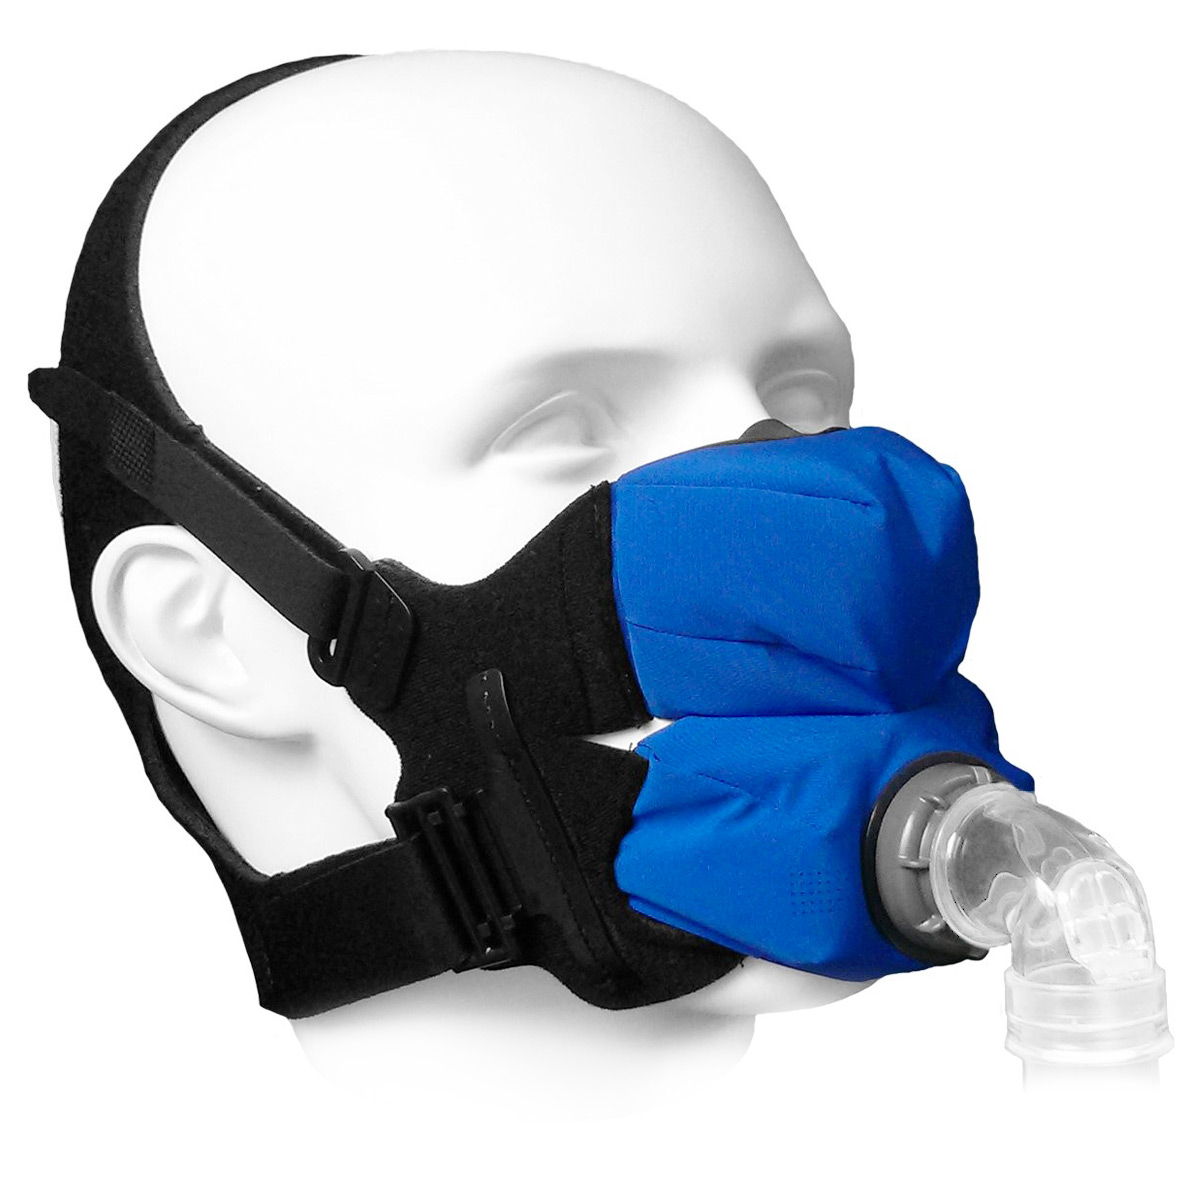 SleepWeaver Anew Soft Cloth Full Face CPAP/BiPAP Mask with Headgear